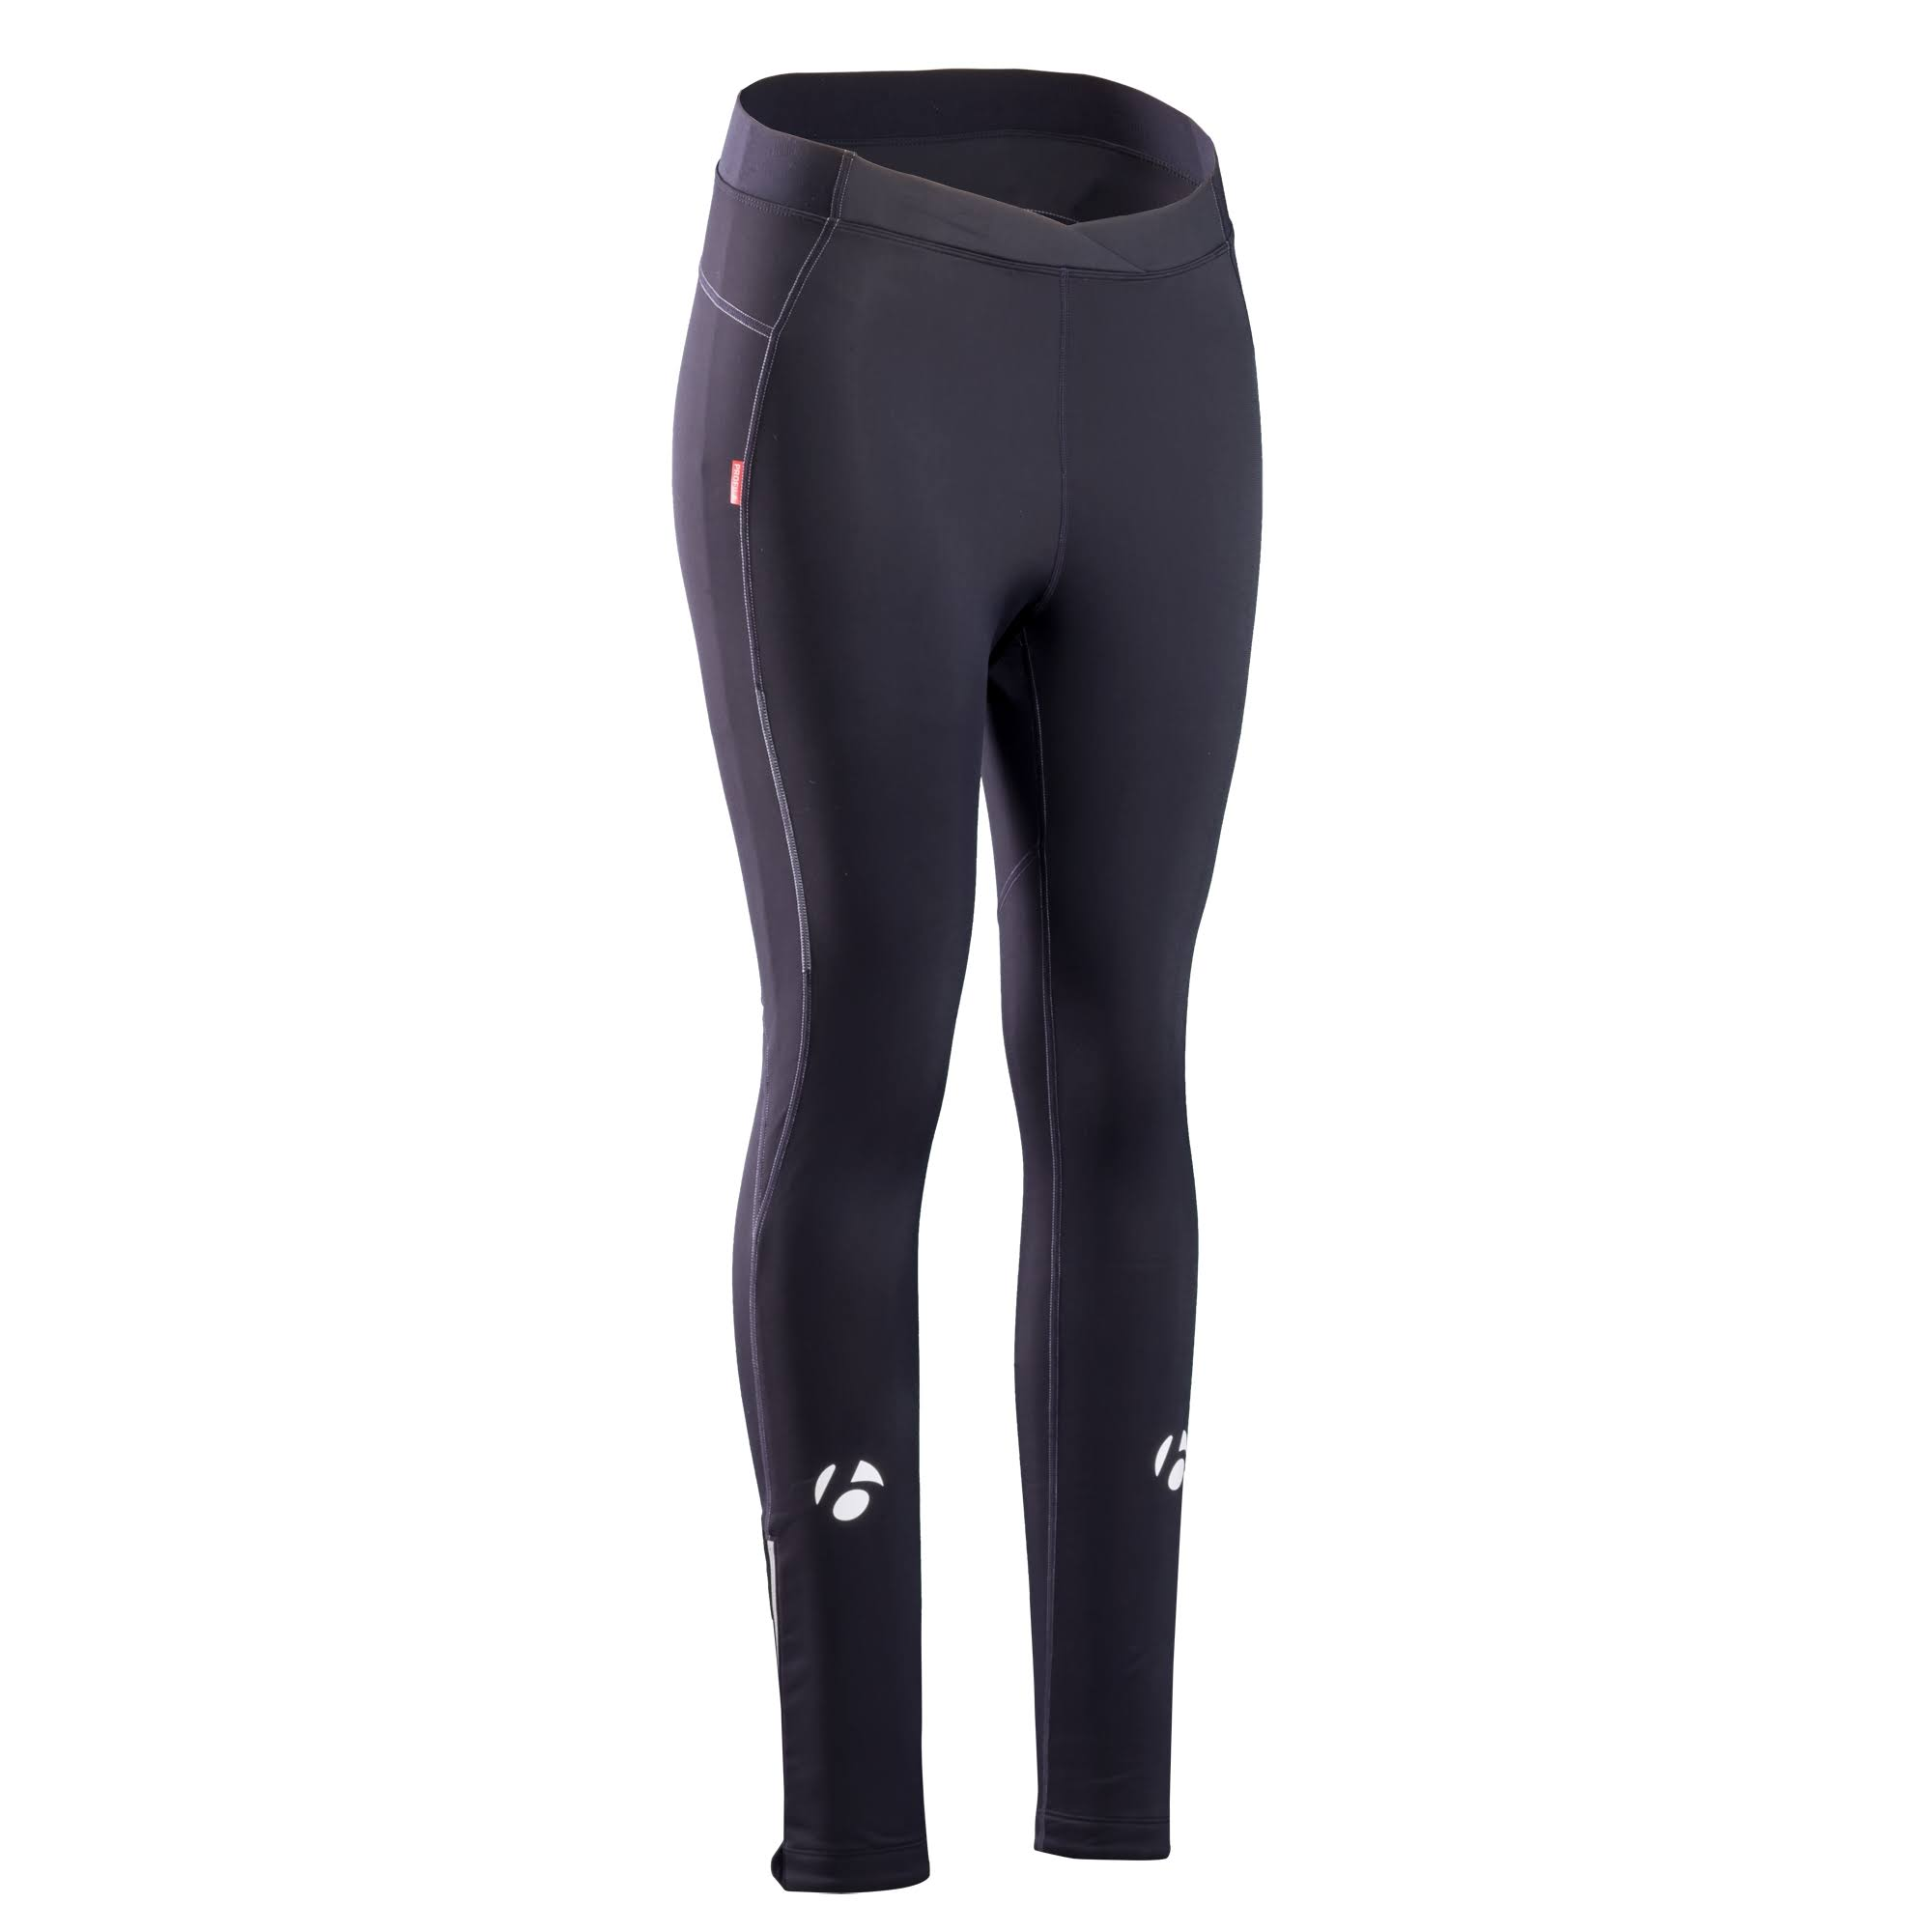 Bontrager Women's Race Thermal Tights - Black, Large